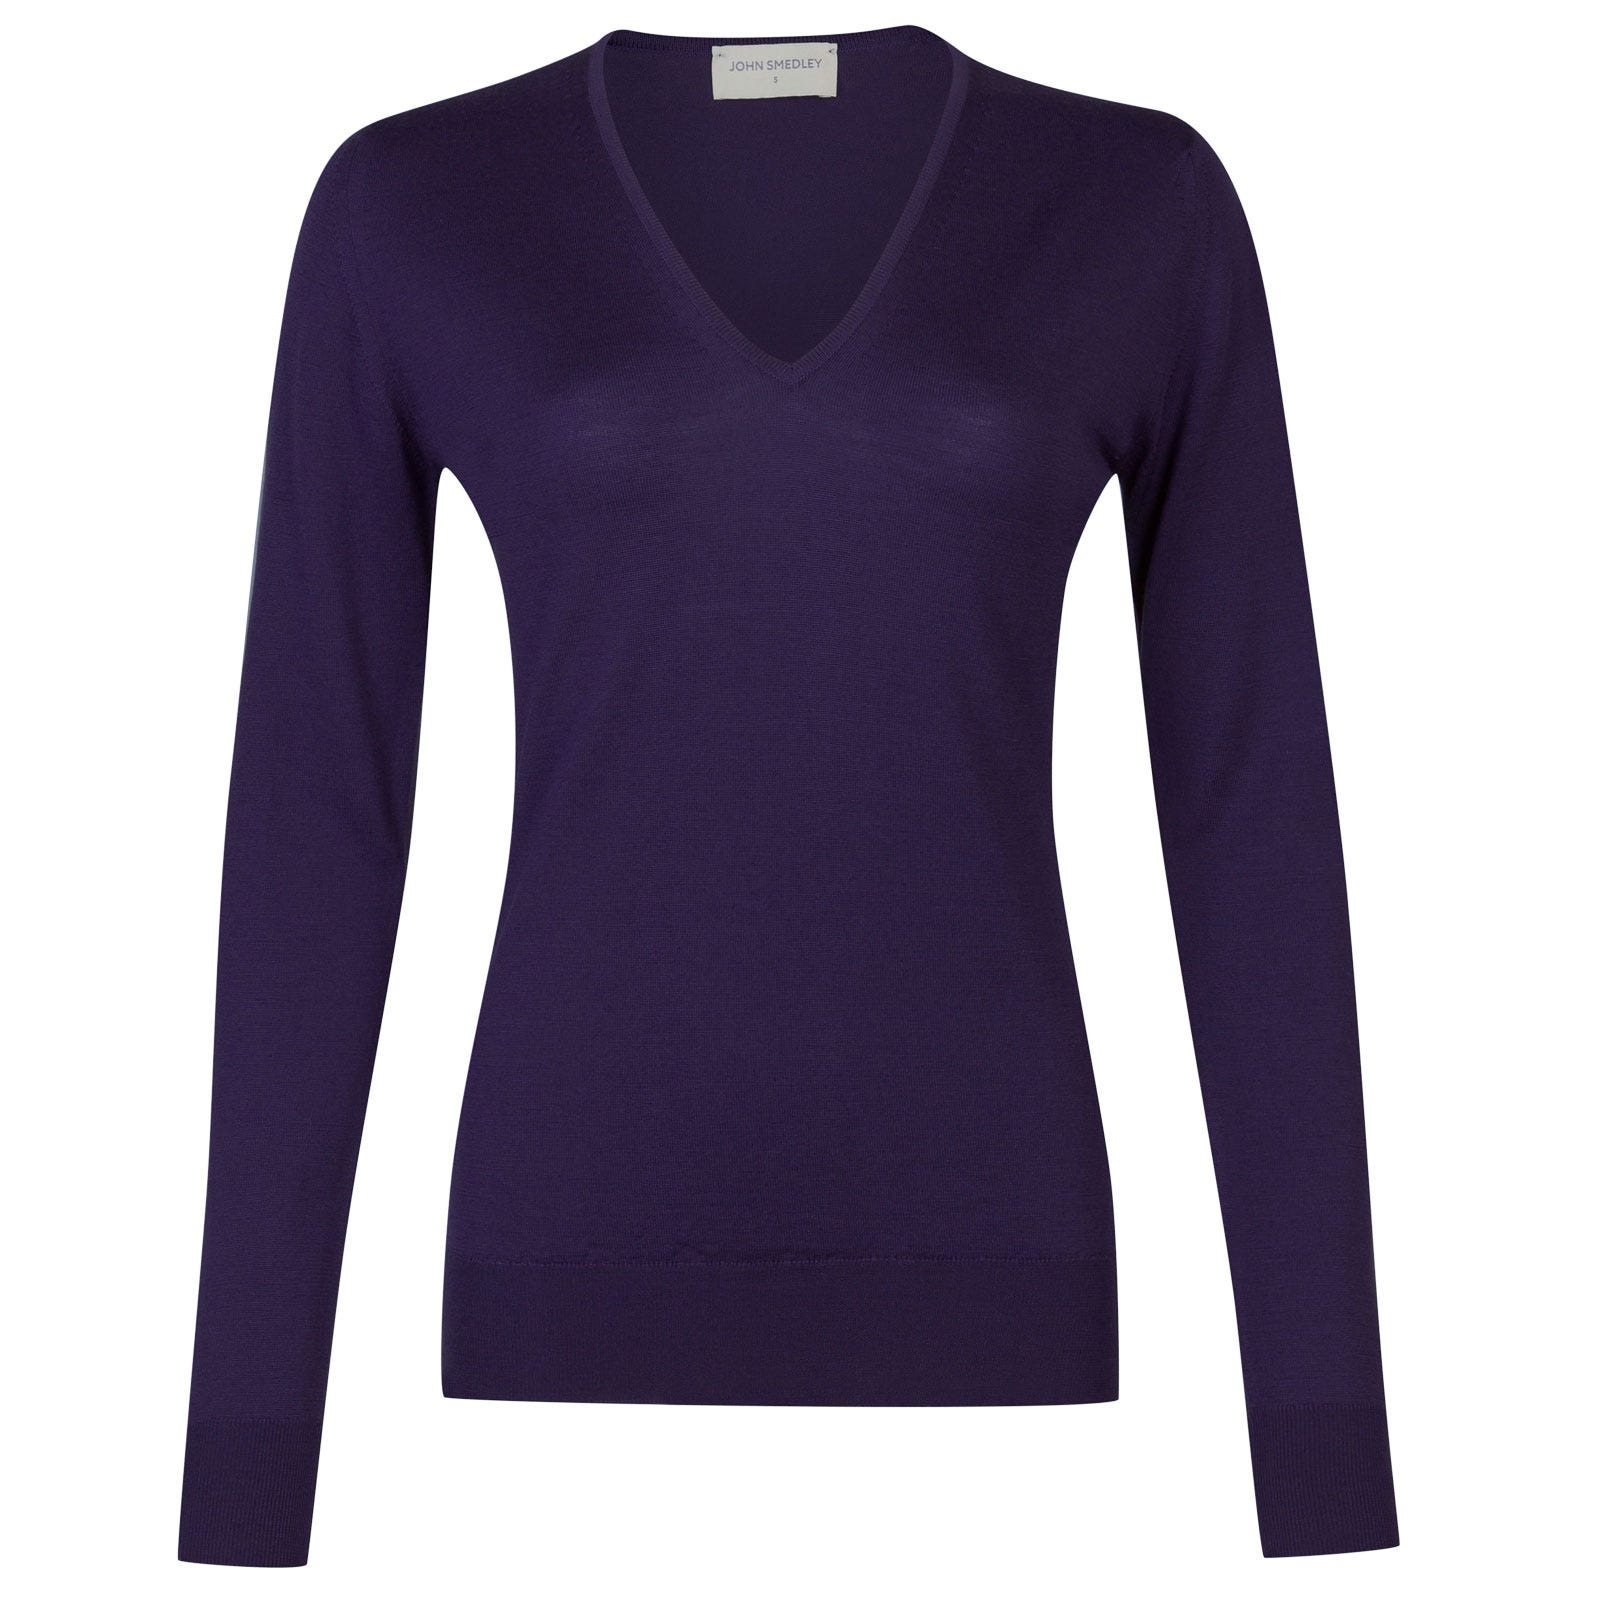 John Smedley orchid Merino Wool Sweater in Elderberry Purple-M